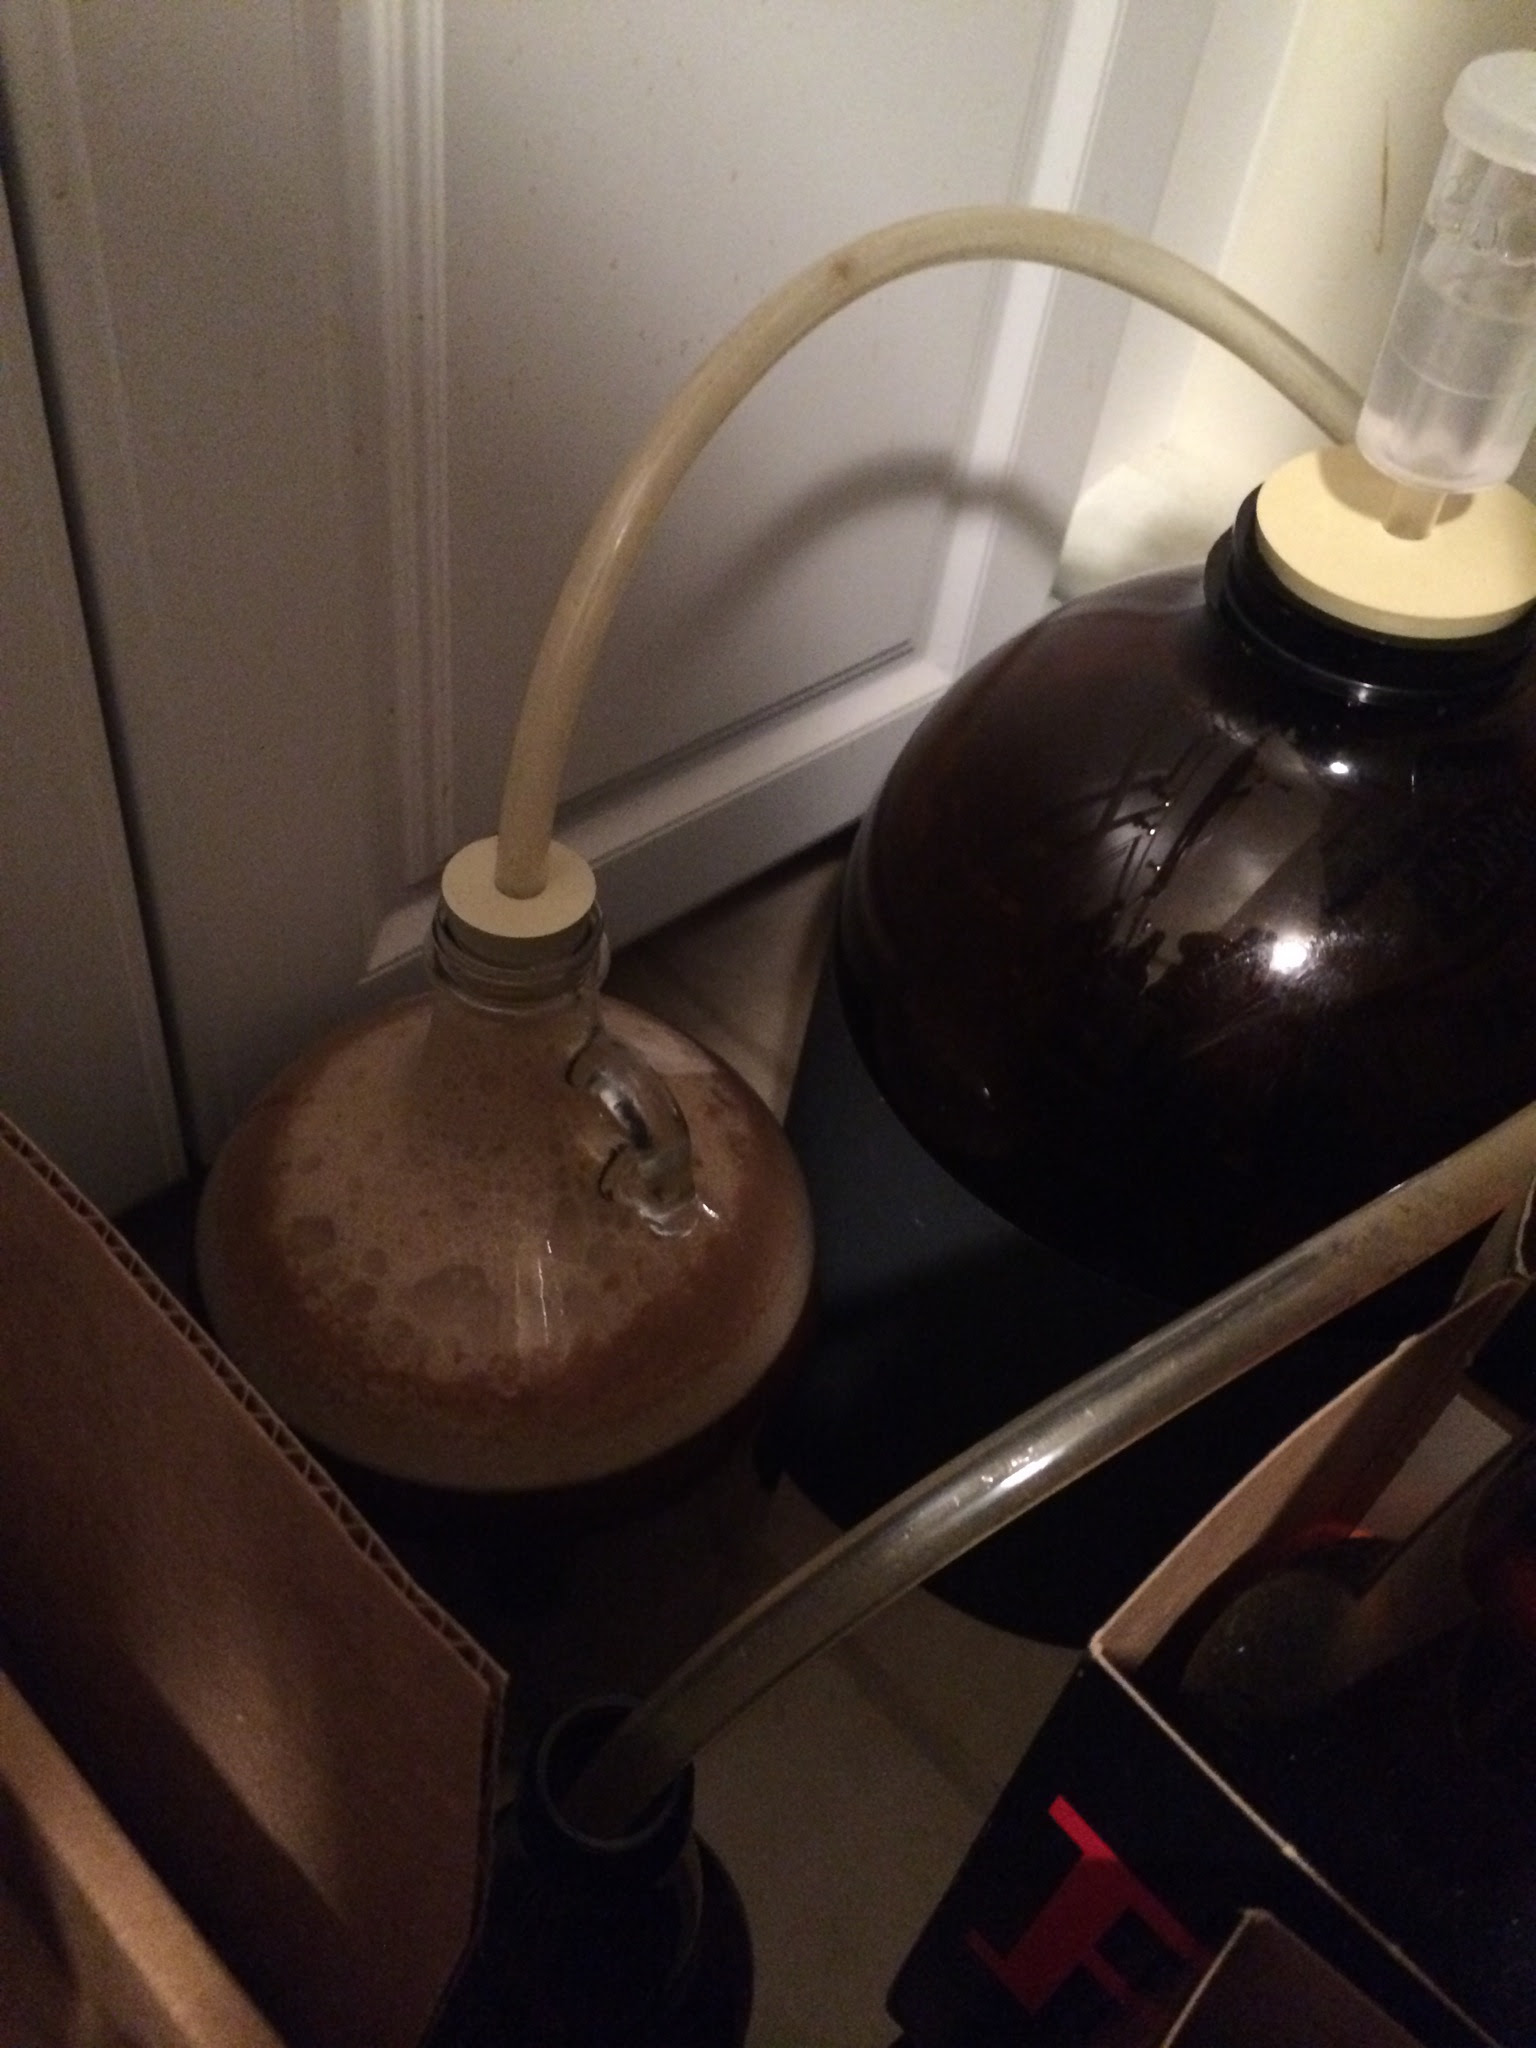 With a one gallon batch you can ferment in a one gallon growler. I used a blow-off tube to compensate for the lack of head space.